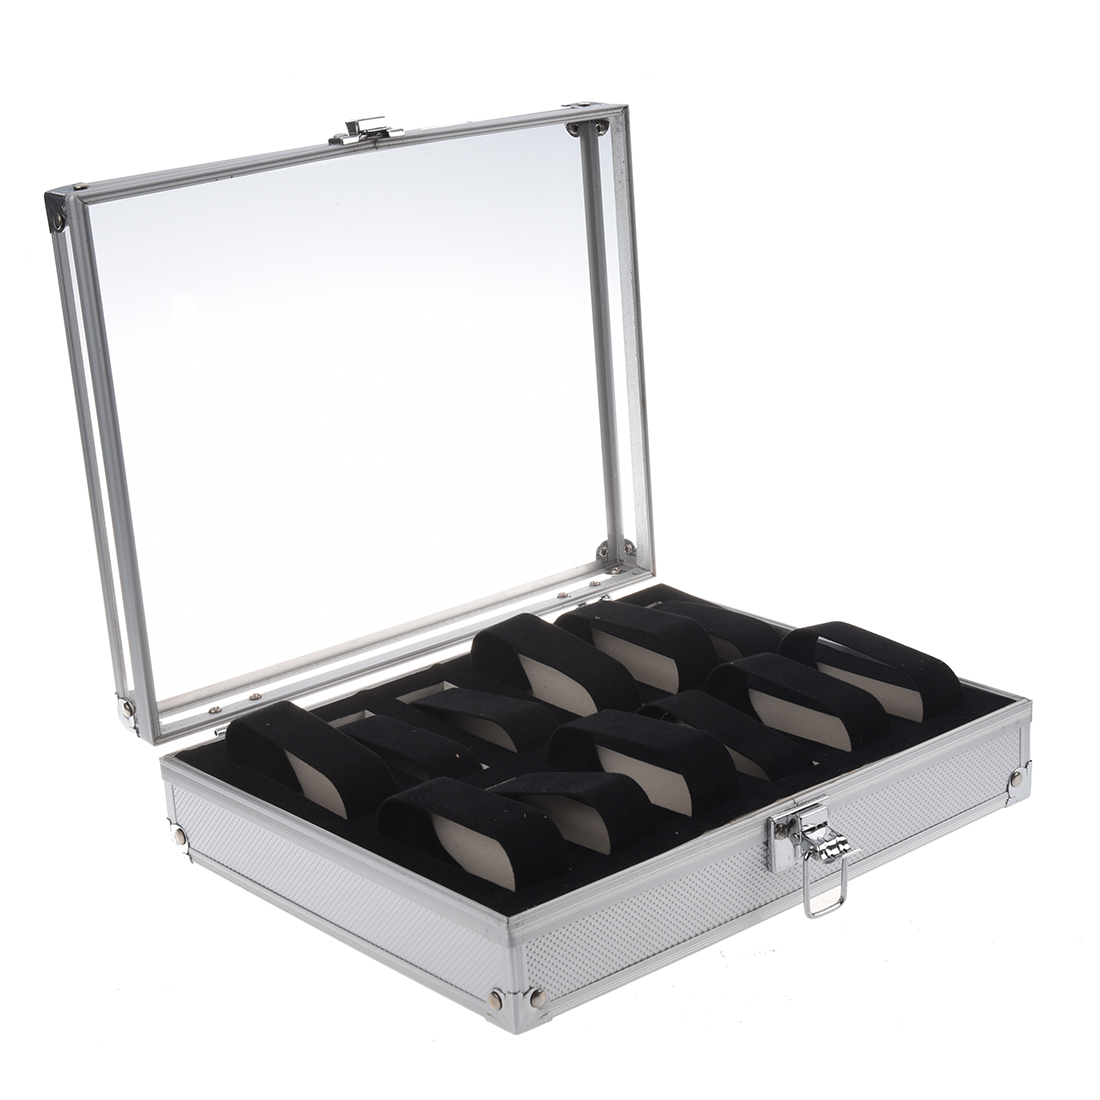 Aluminum 12 Wristwatch Watch Showcase Display Storage Case BoxAluminum 12 Wristwatch Watch Showcase Display Storage Case Box